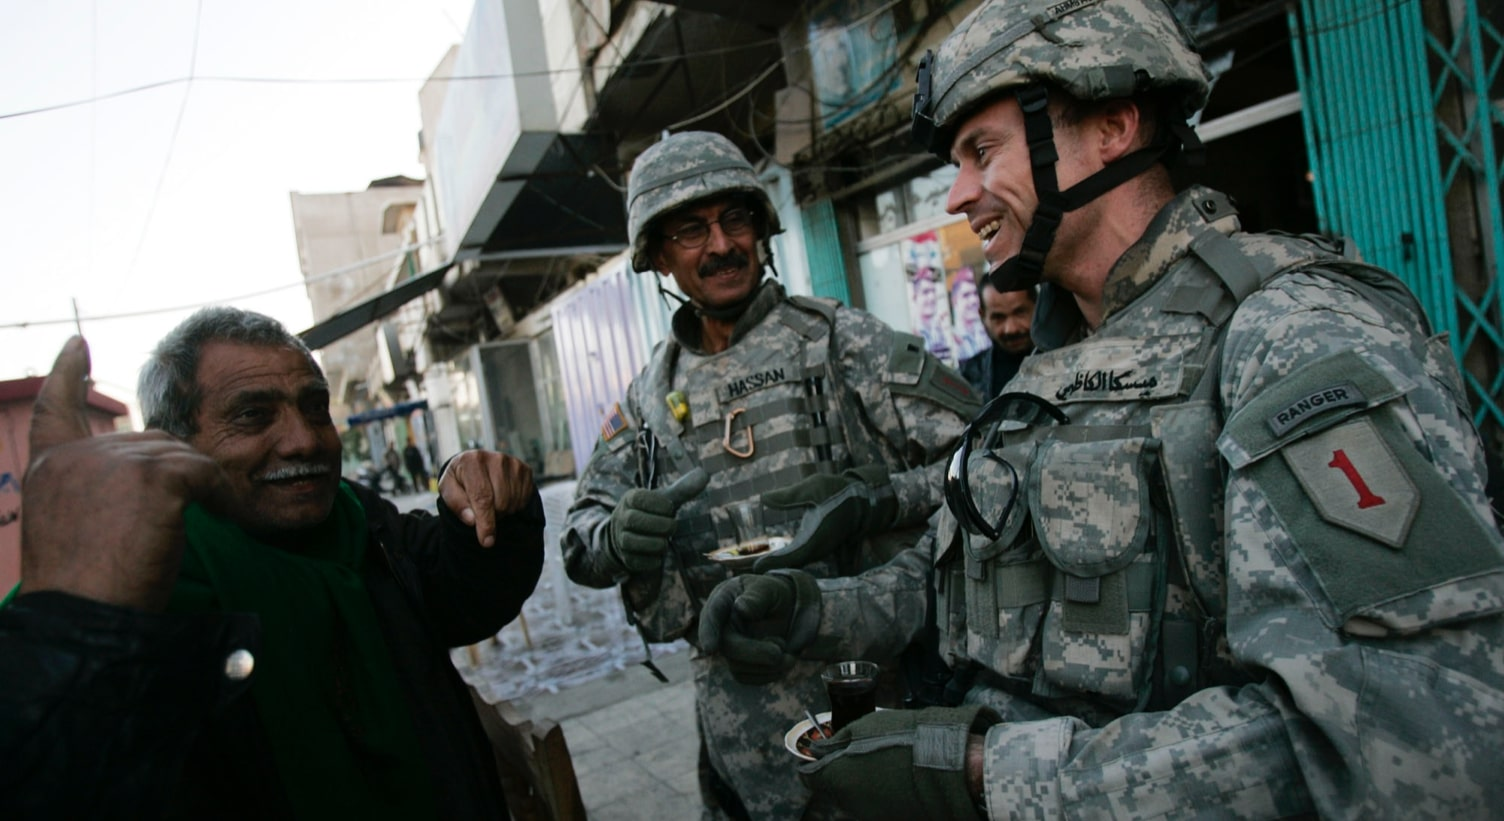 Steve Miska (right), on the streets of Baghdad with his interpreter, Hassan. Photo credit: Chris Hondros, Getty Images, 2007